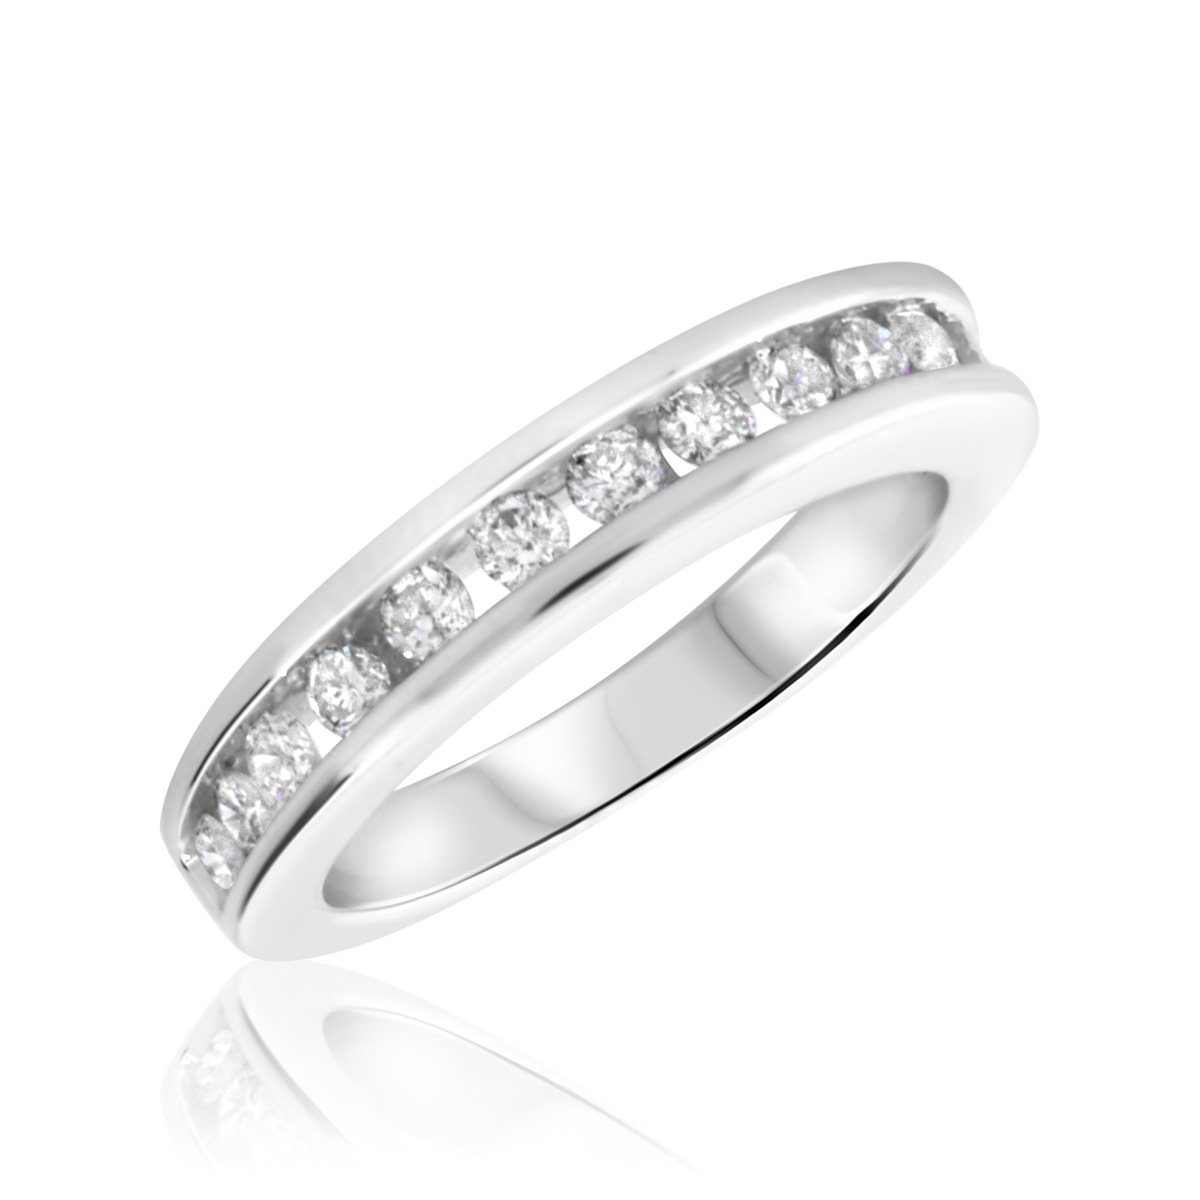 1/2 Carat T.W. Round Cut Diamond Ladies Wedding Band 10K White Gold